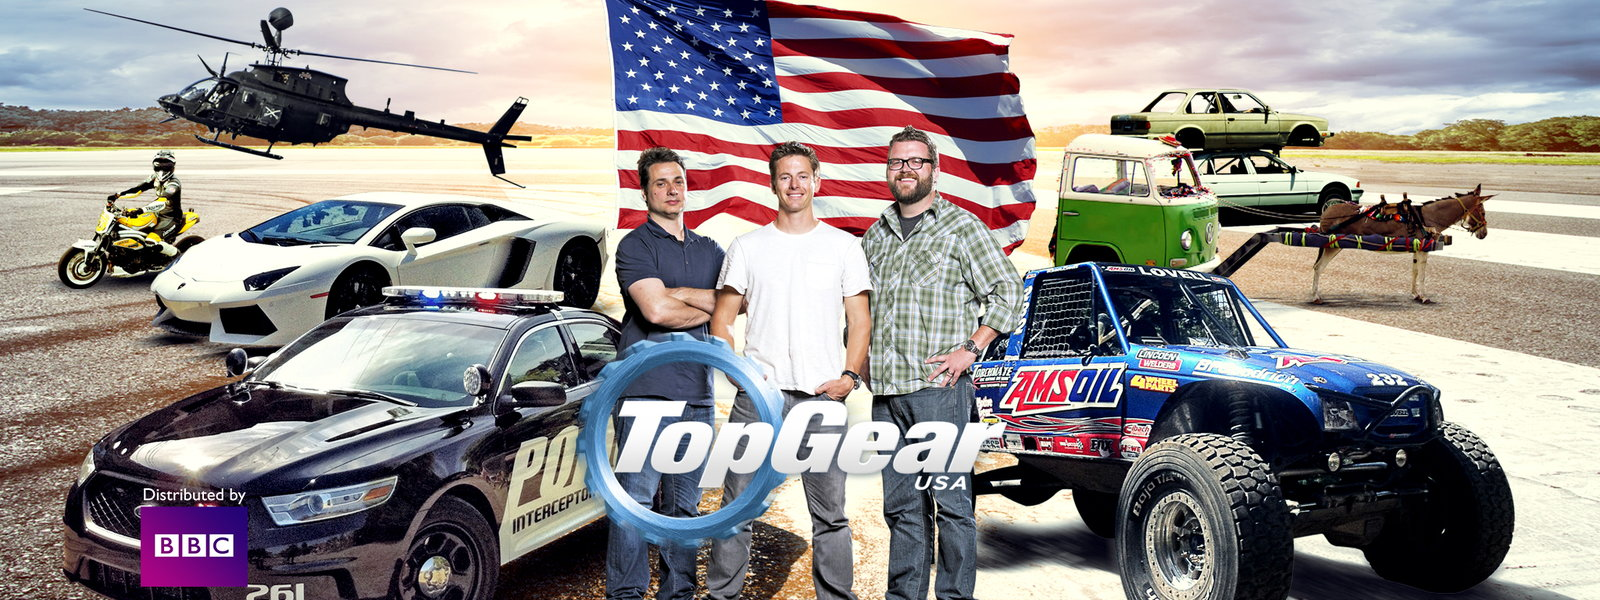 Top Gear Usa Gets Cancelled Unfortunately Moto Networks